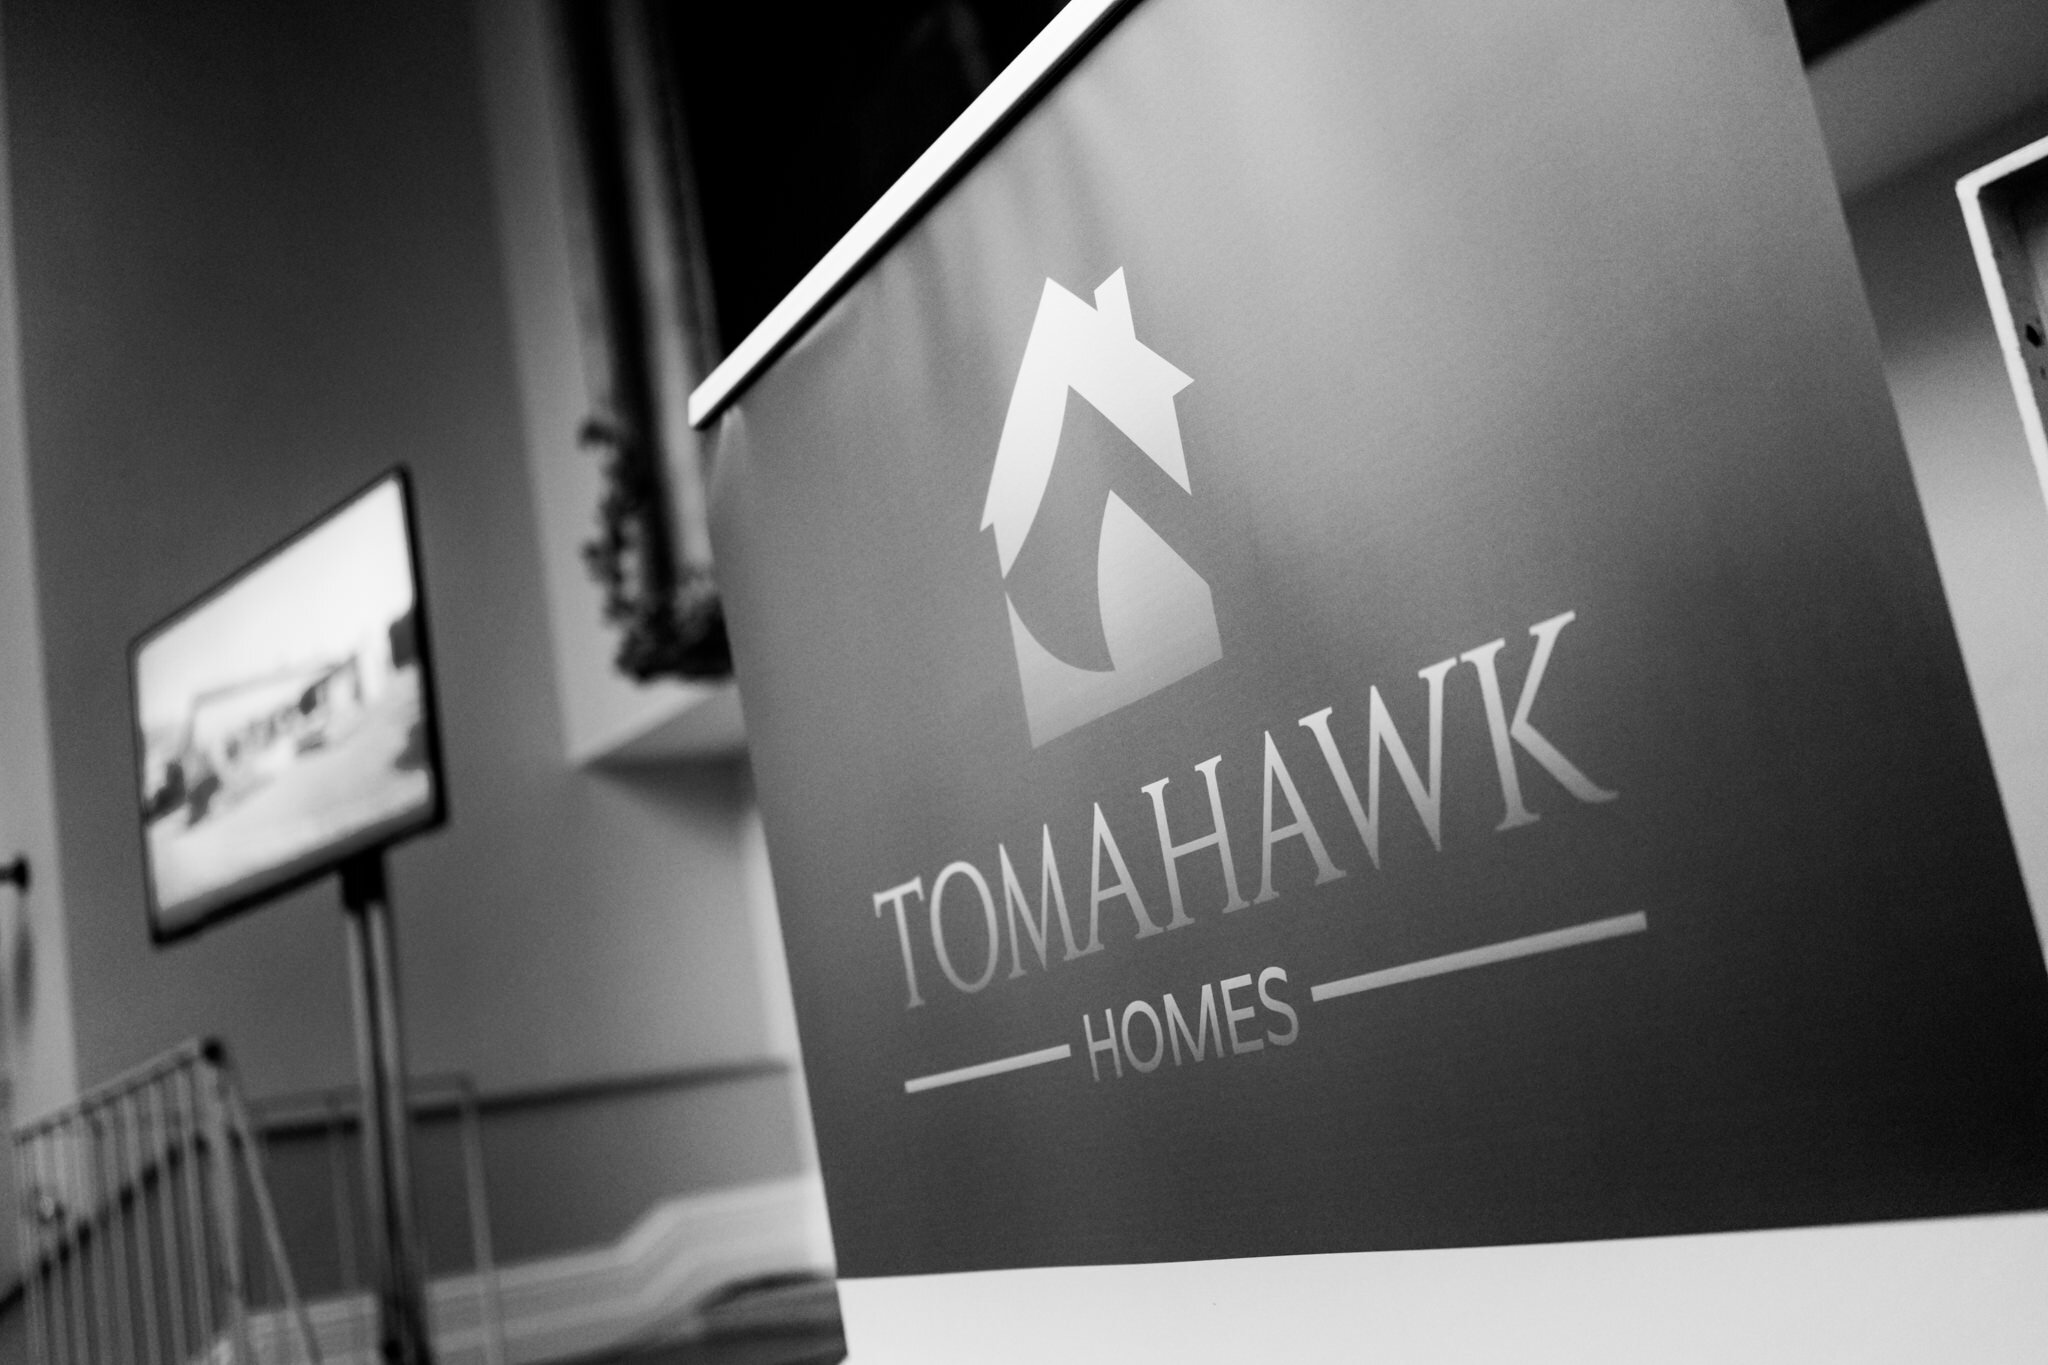 Tomohawk Homes00199-Edit.jpg